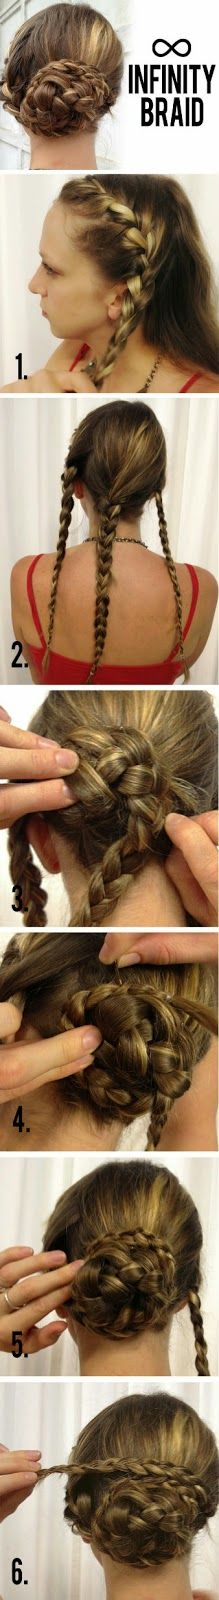 Learn How To Create This Gorgeous Infinity Braid in Just a Few Simple Steps